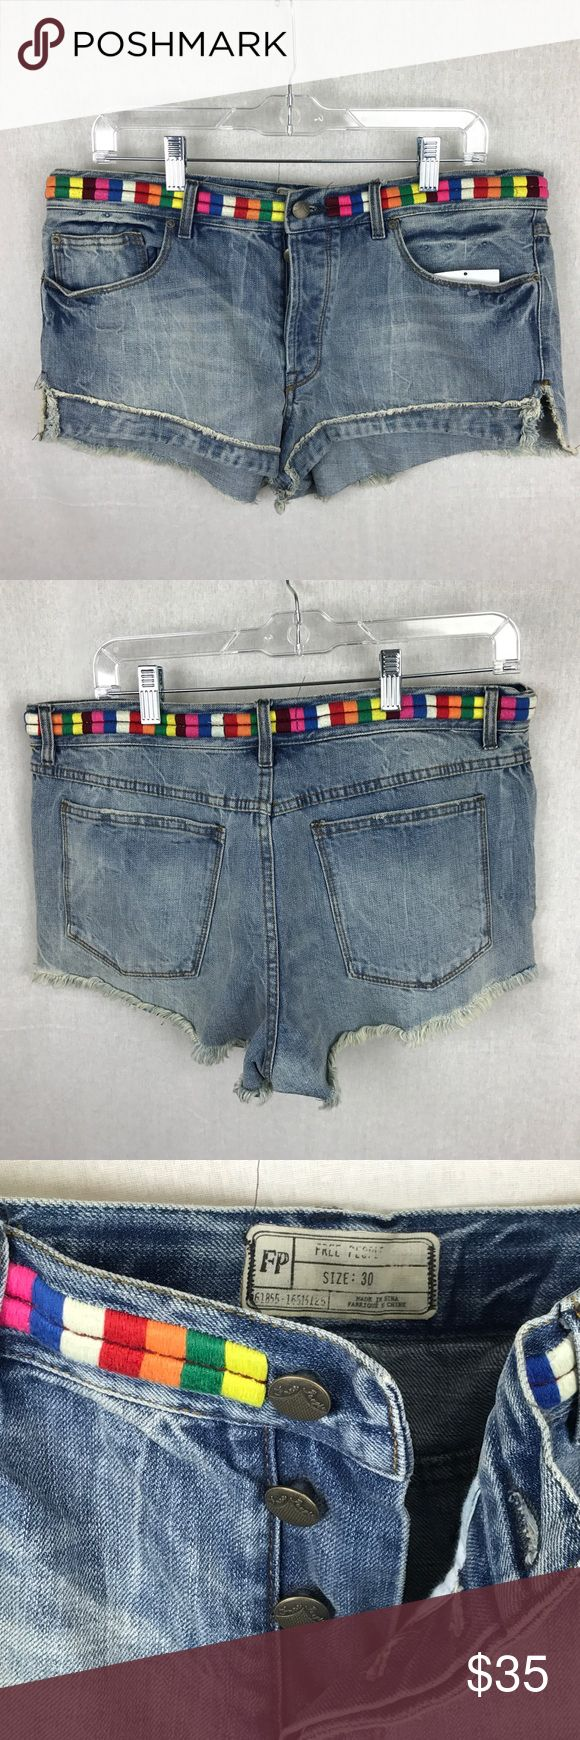 """NWOT FREE PEOPLE BUTTON FLY JEAN SHORTS SIZE 30 NWOT FREE PEOPLE BUTTON FLY JEAN SHORTS SIZE 30. COLORFUL BAND AROUND WAIST Size 17 1/2"""" inseam 2 1/4"""" overall length front 9"""" and back 11"""". These are new without tags.   Thank you for looking. Free People Shorts Jean Shorts"""